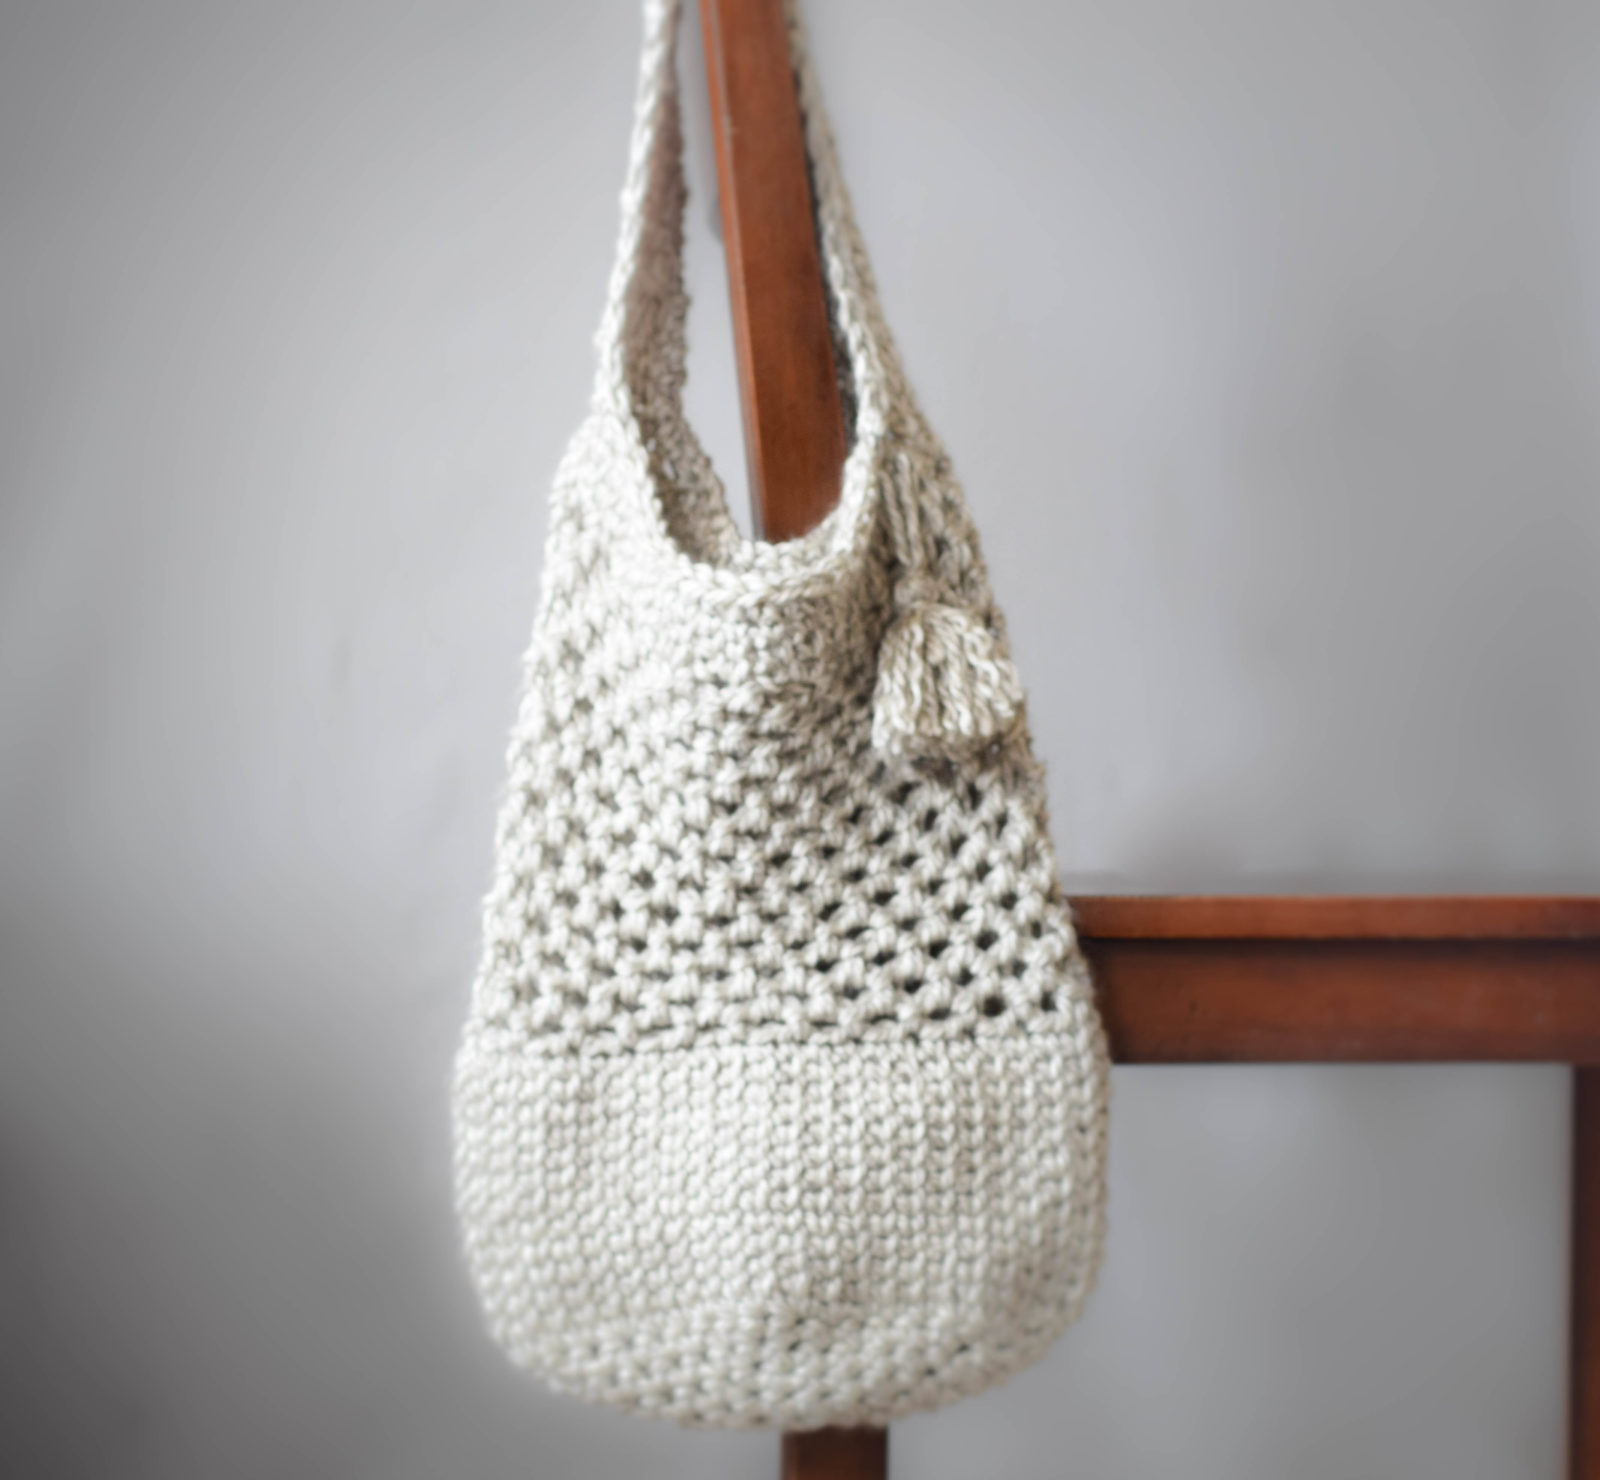 Free Crochet Patterns For Bags And Totes : Manhattan Market Tote - Crochet Pattern - Mama In A Stitch